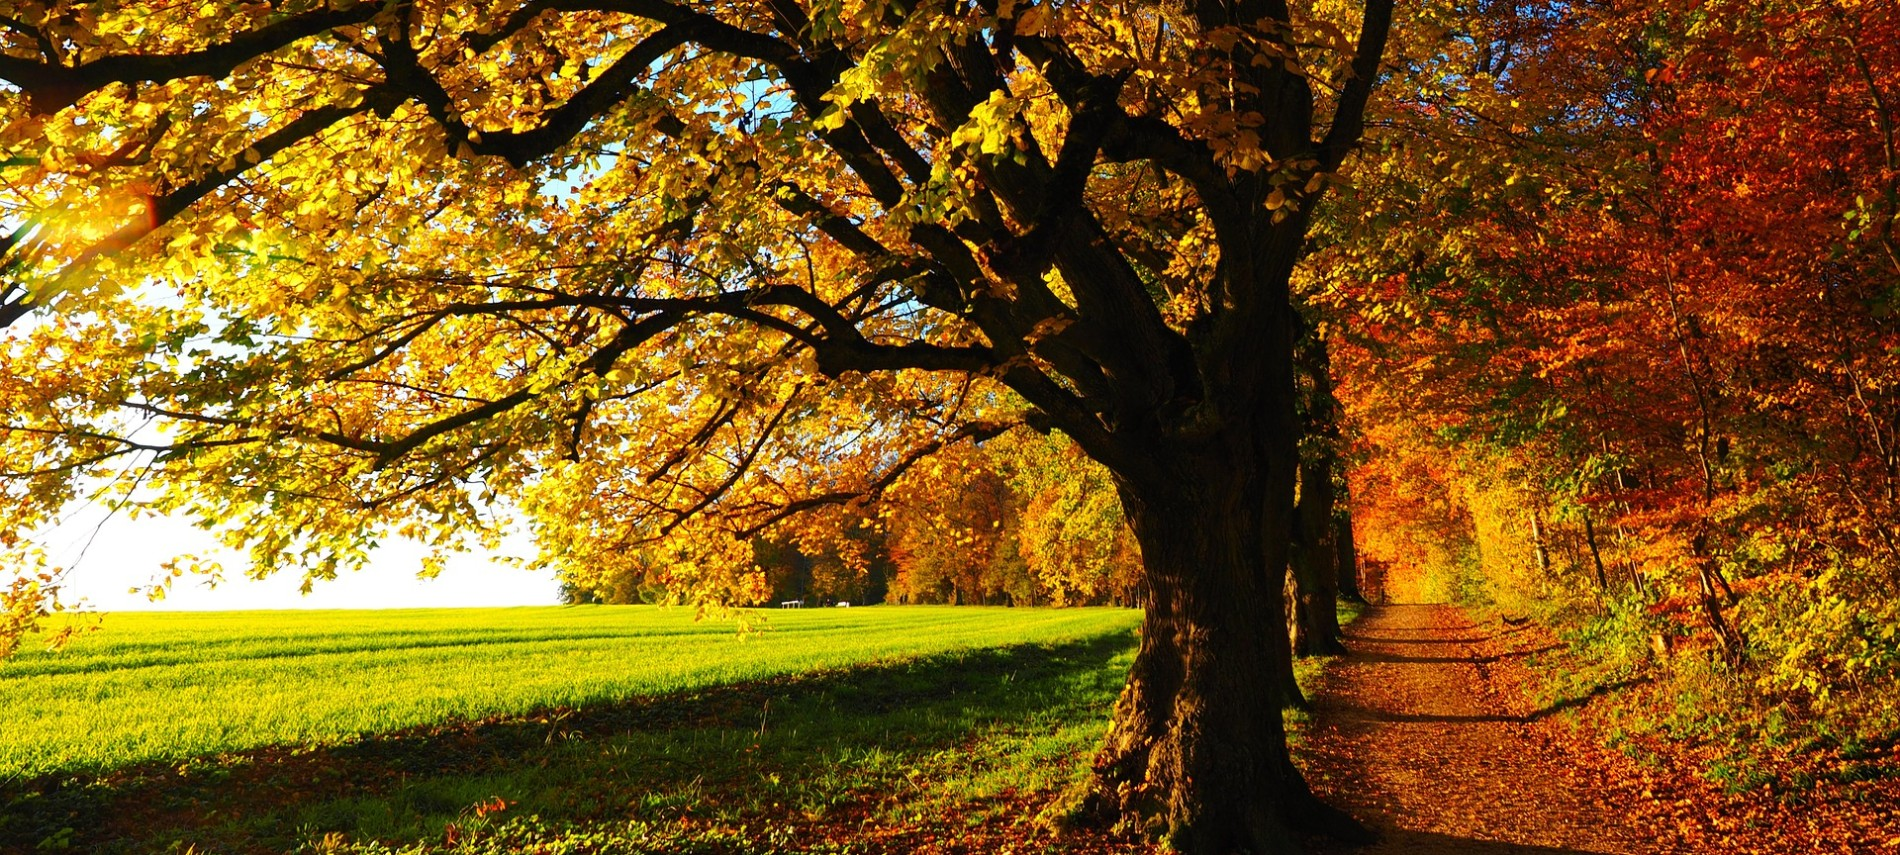 Green field next to path with large trees full of yellow, orange and red fall foliage